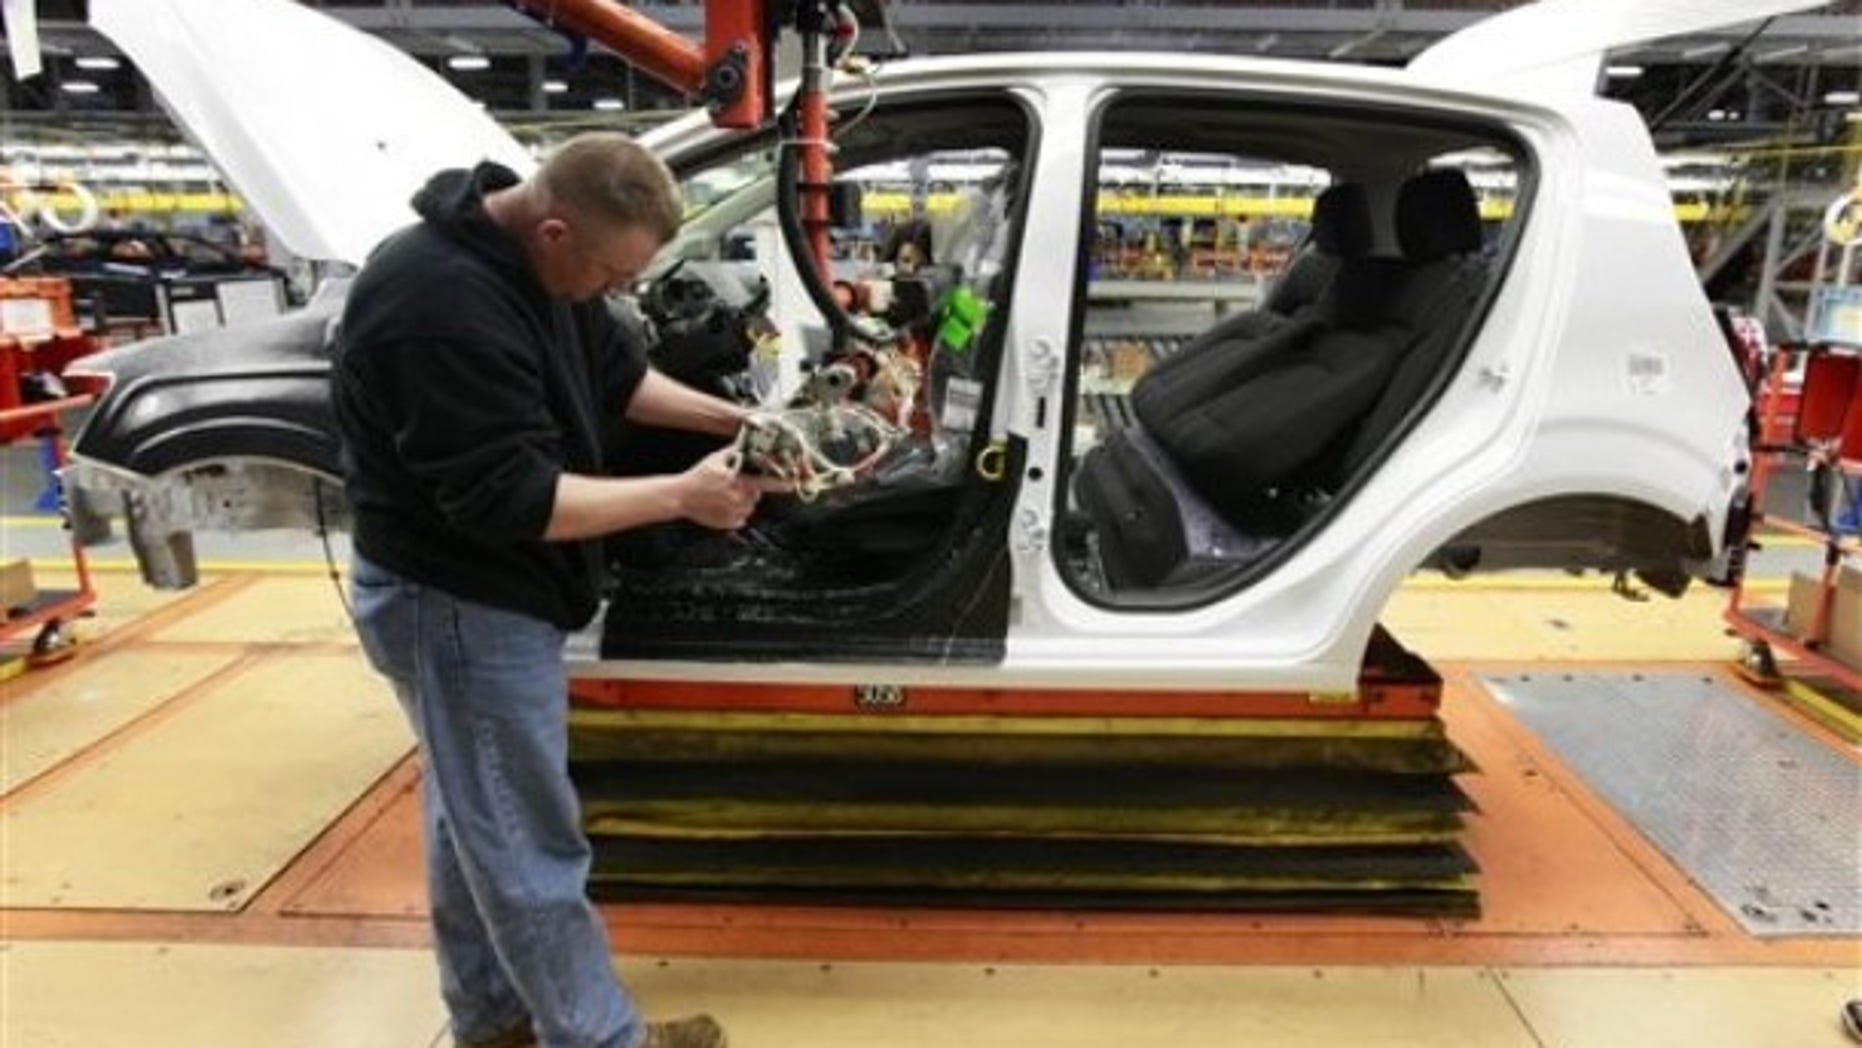 In this May 19, 2011 photo, line worker David Beebe works on a pre-production Chevrolet Sonic at the General Motors Orion Assembly plant in Orion Township, Mich. General Motors said Friday, June17, 2011, that pricing for its new Chevrolet Sonic will start at just under $15,000. The sub-compact car is set to hit dealer lots this fall. (AP Photo/Paul Sancya)